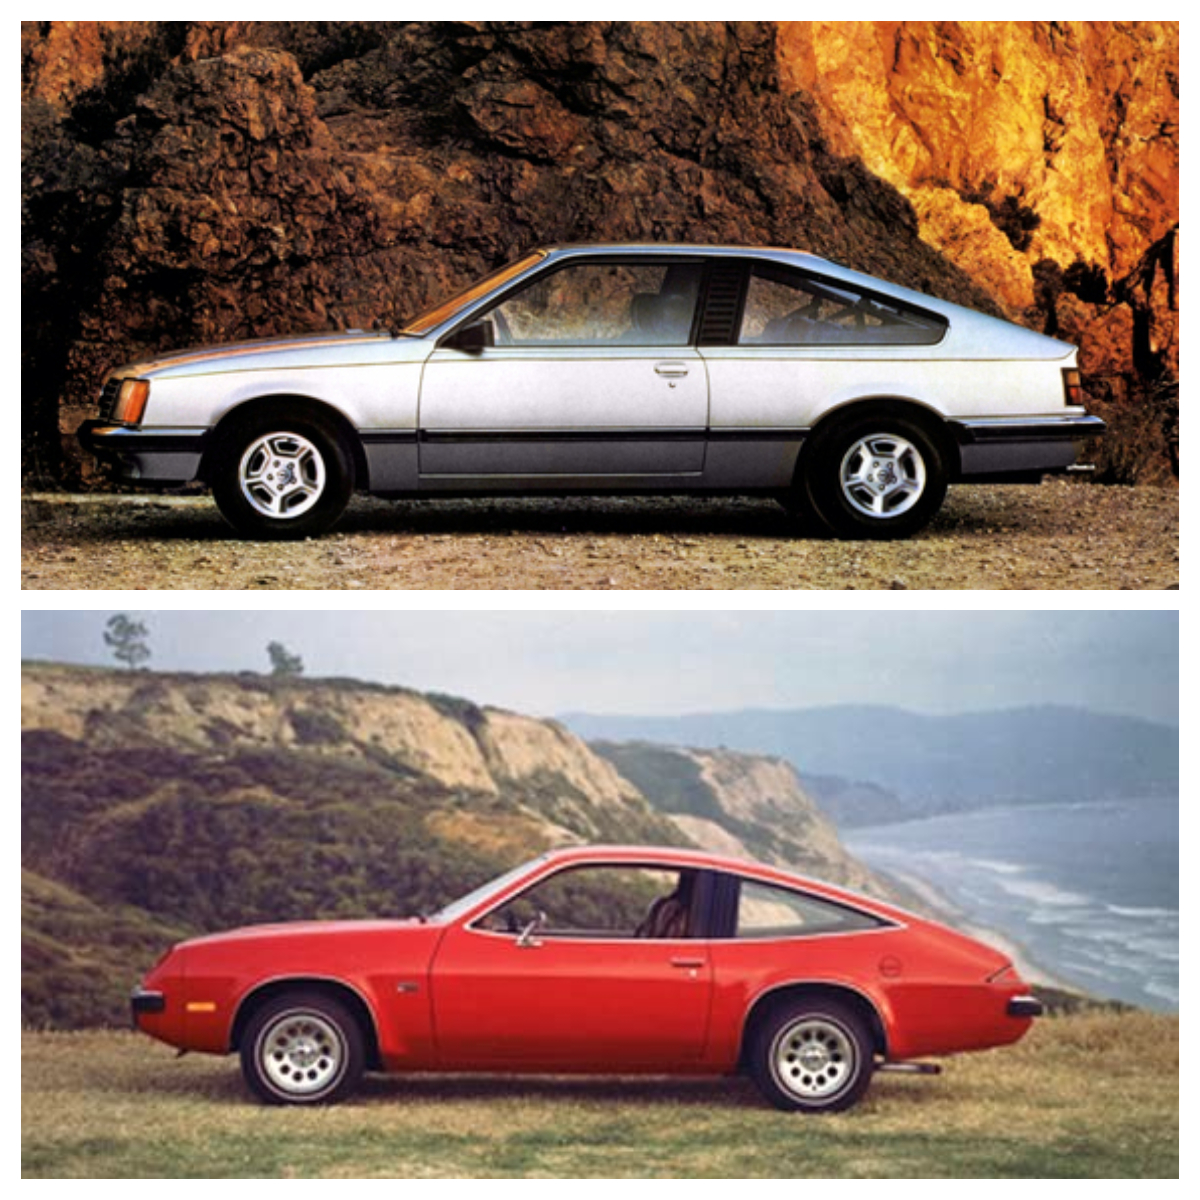 hight resolution of the chevrolet monza in hatchback coupe form measured 179 3 inches long and 65 4 inches wide the opel was bigger but being european